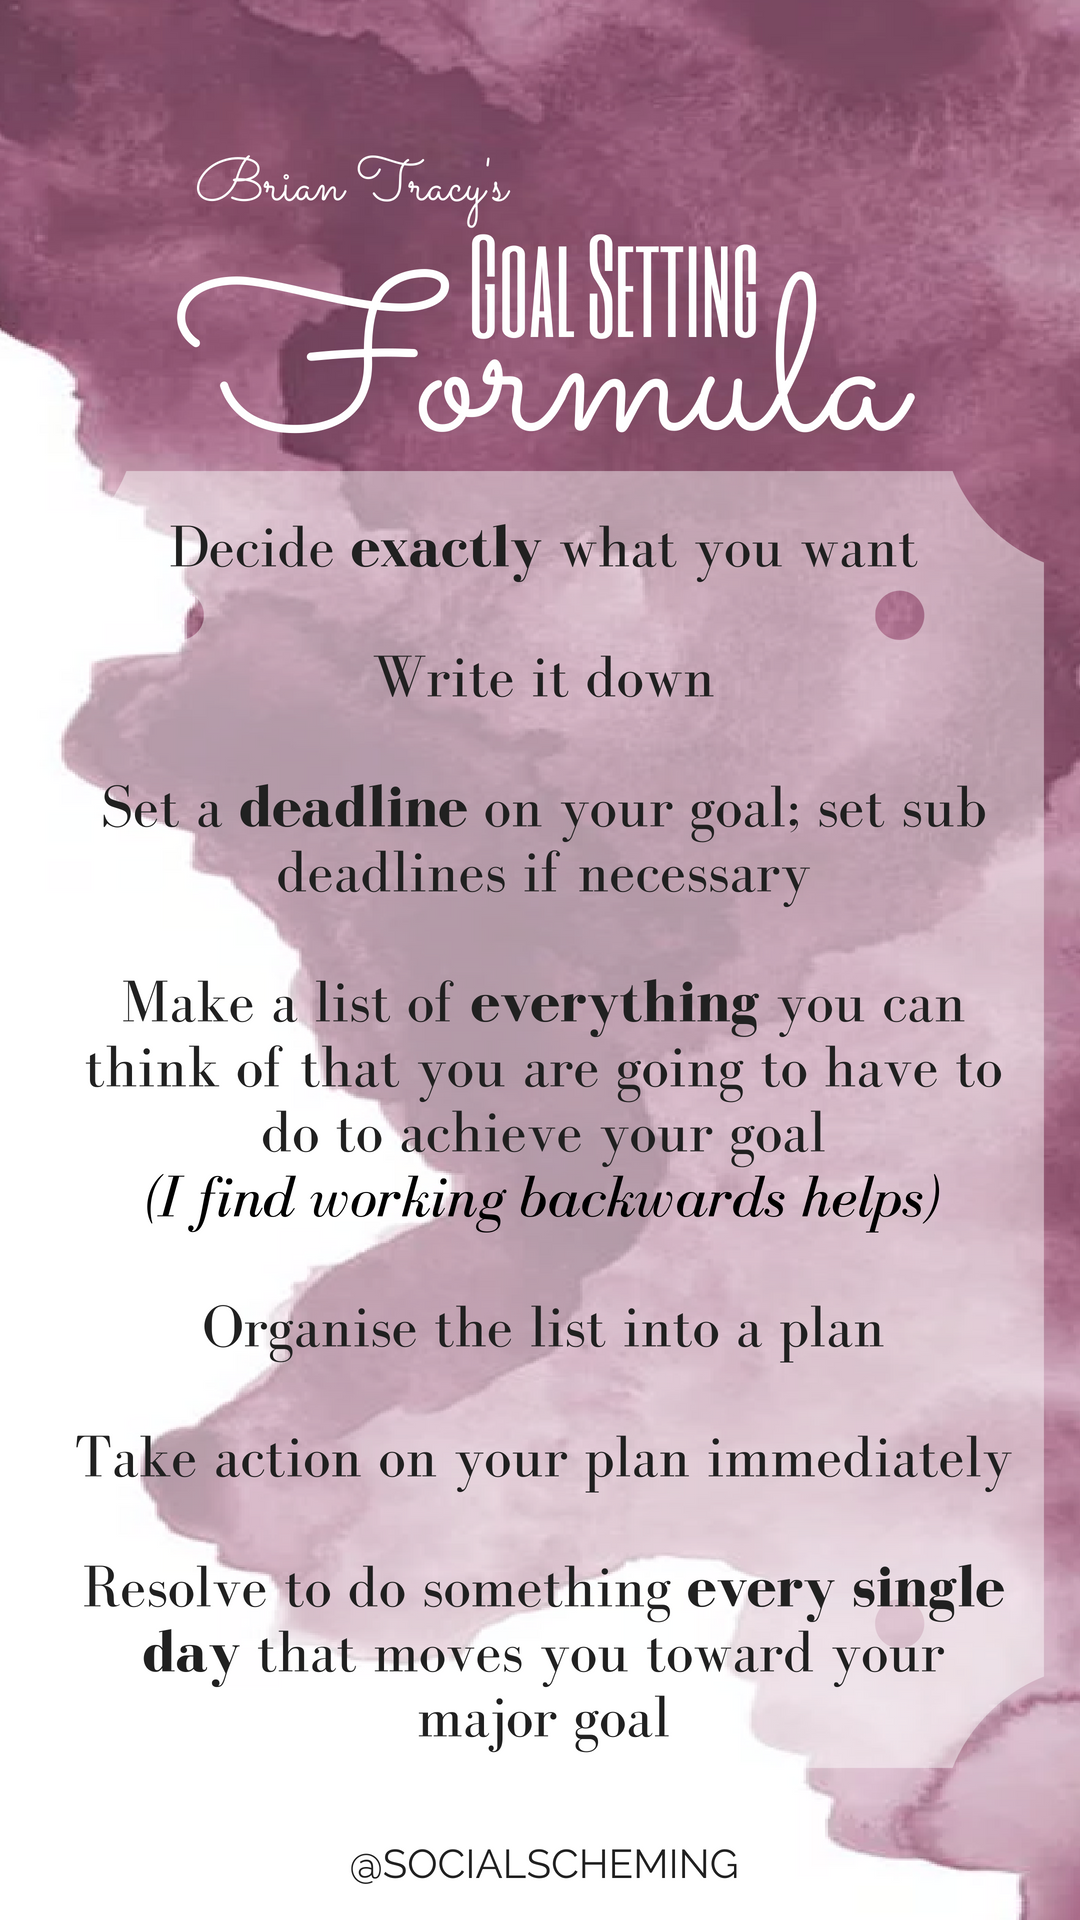 The Simple Goal Setting Formula From Brian Tracy S Book